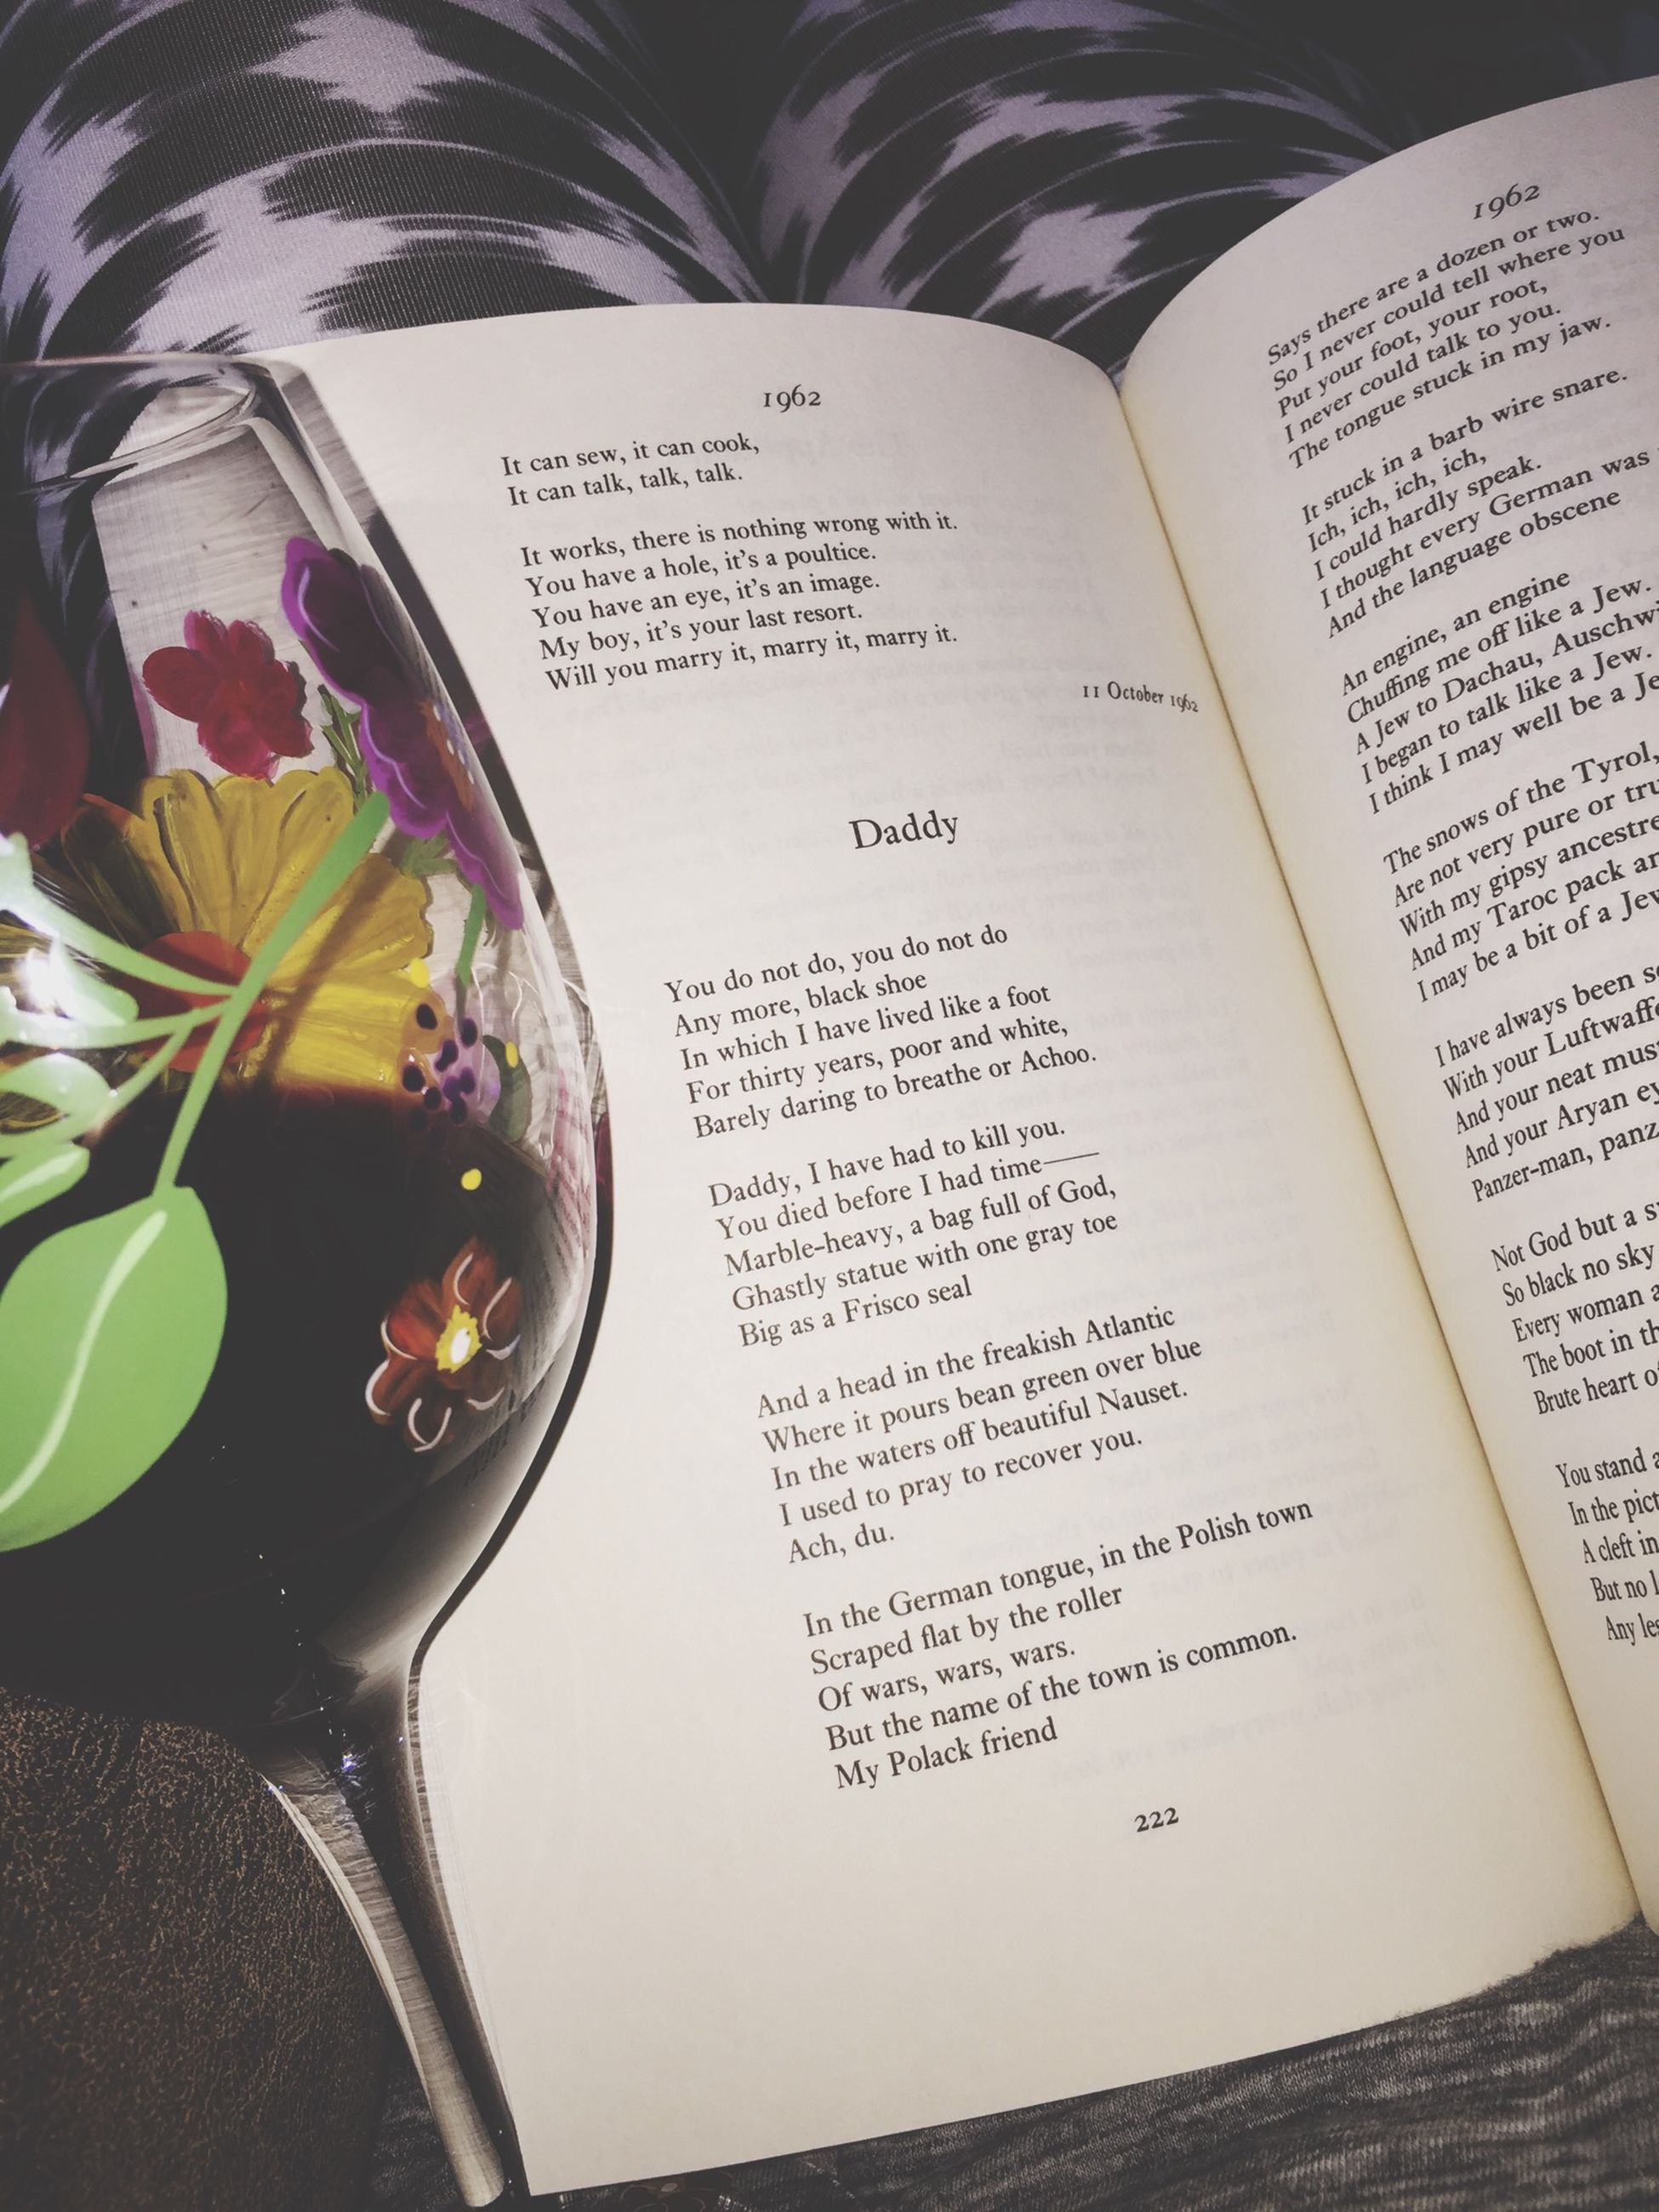 indoors, text, western script, communication, book, table, paper, still life, close-up, education, freshness, page, high angle view, open, finance, food and drink, no people, handwriting, message, part of